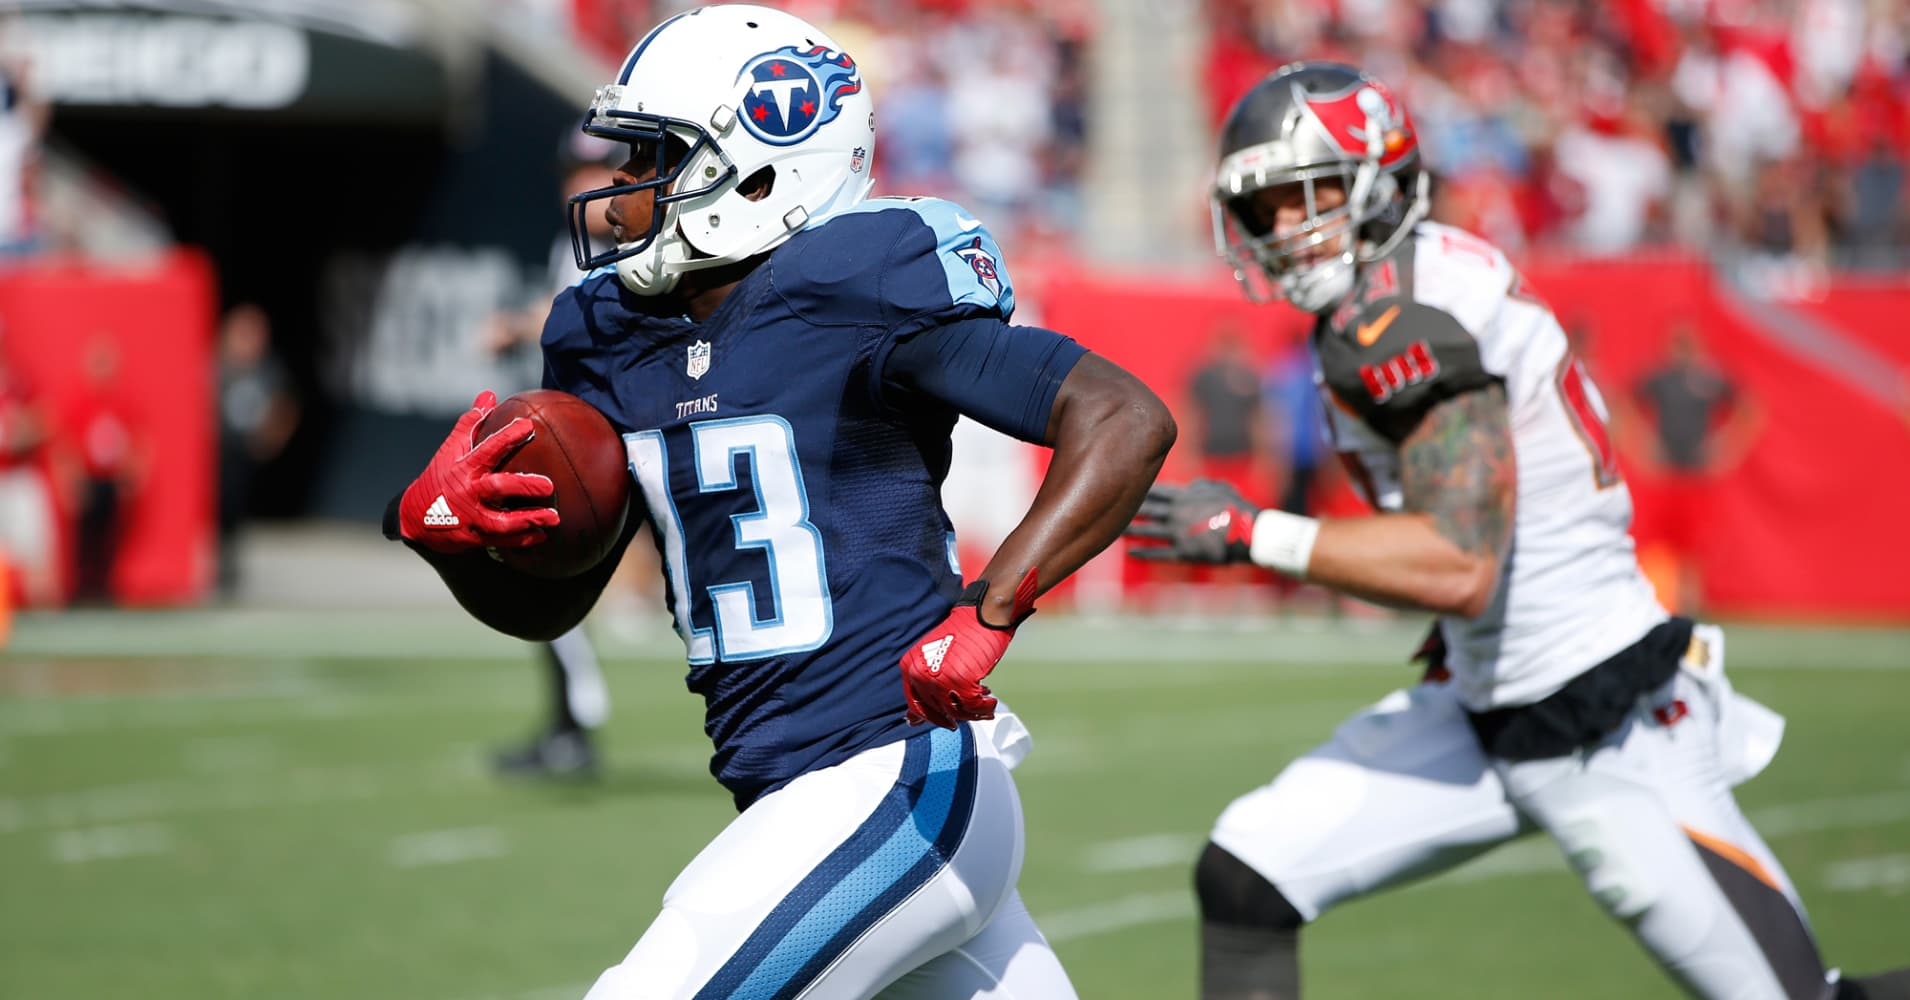 Kendall Wright of the Tennessee Titans.